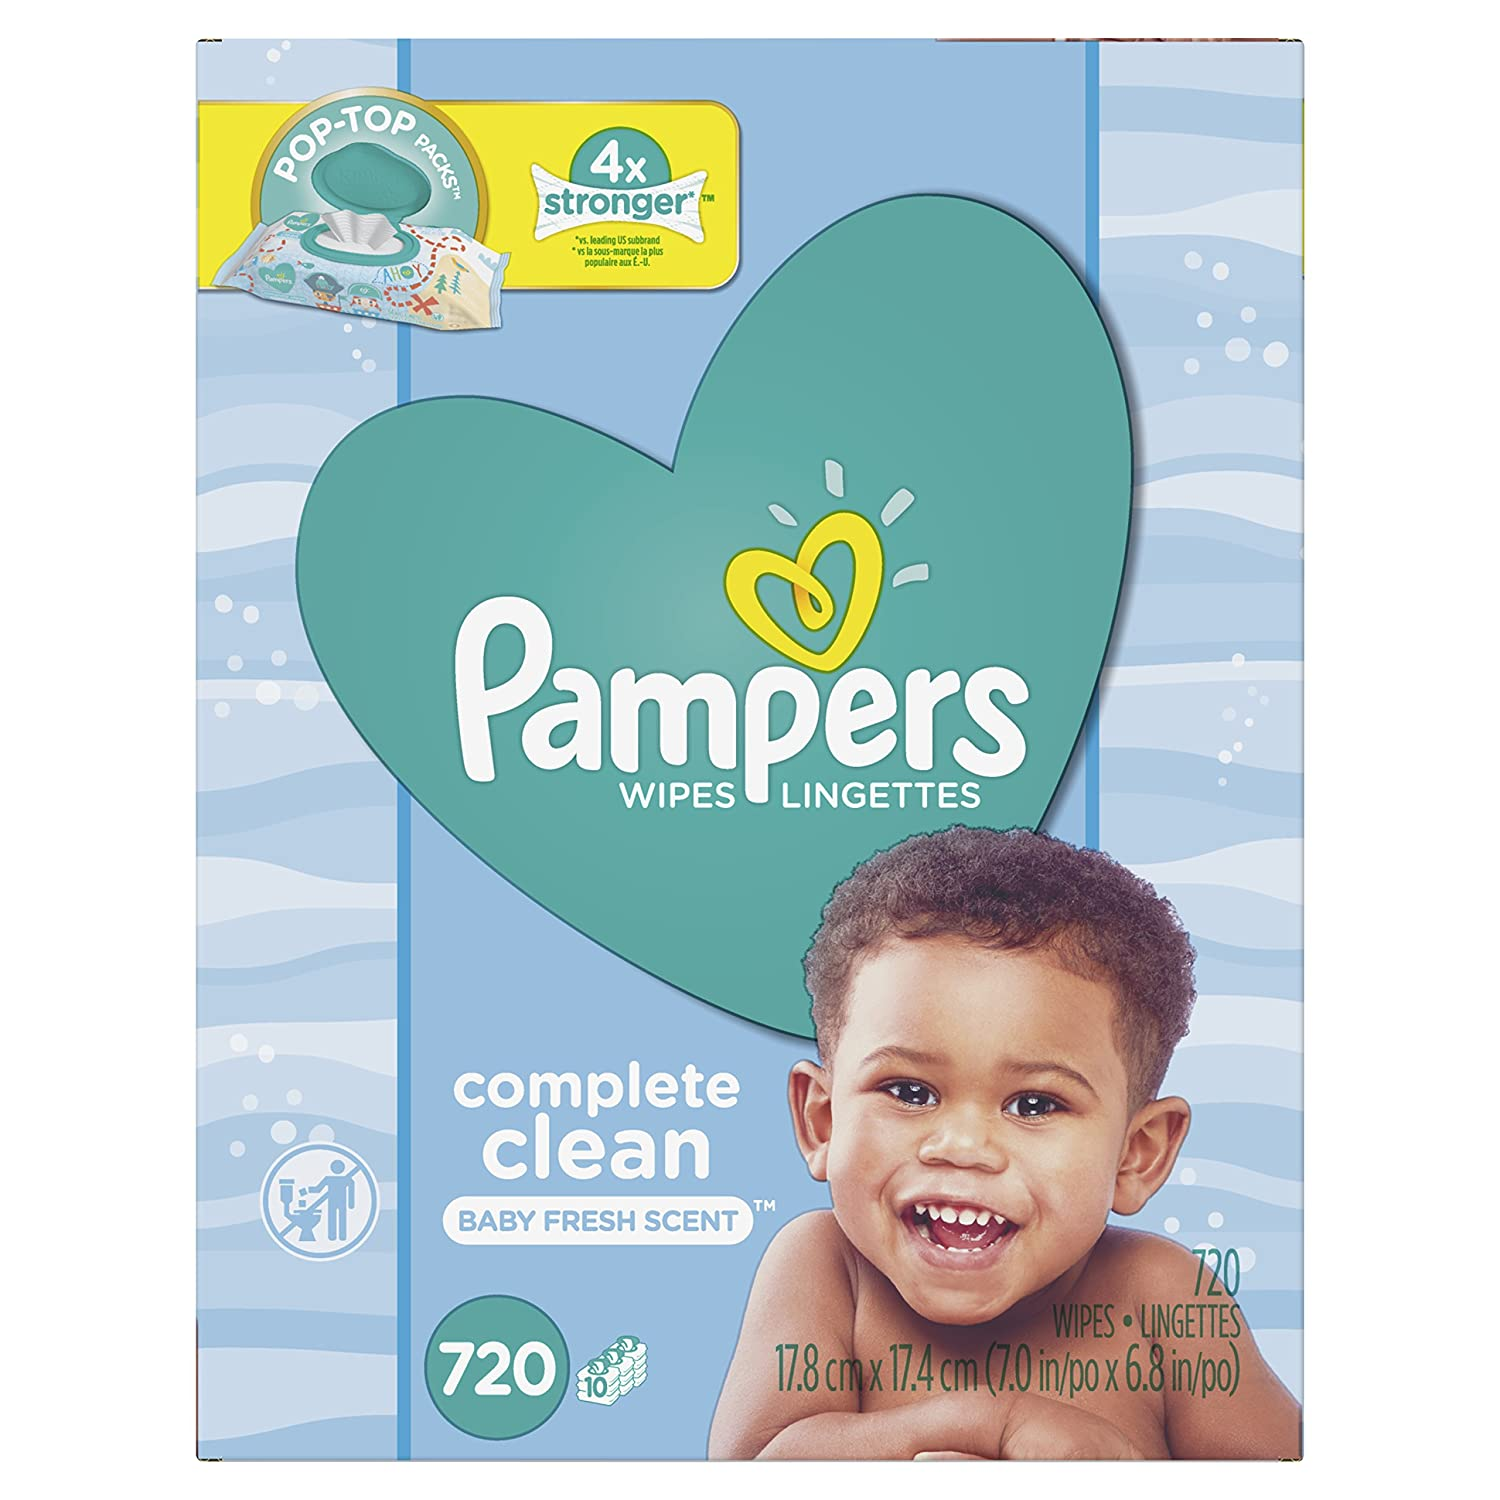 Pampers Baby Wipes Complete Clean SCENTED 3X Pop-Top, 216 Count Procter and Gamble